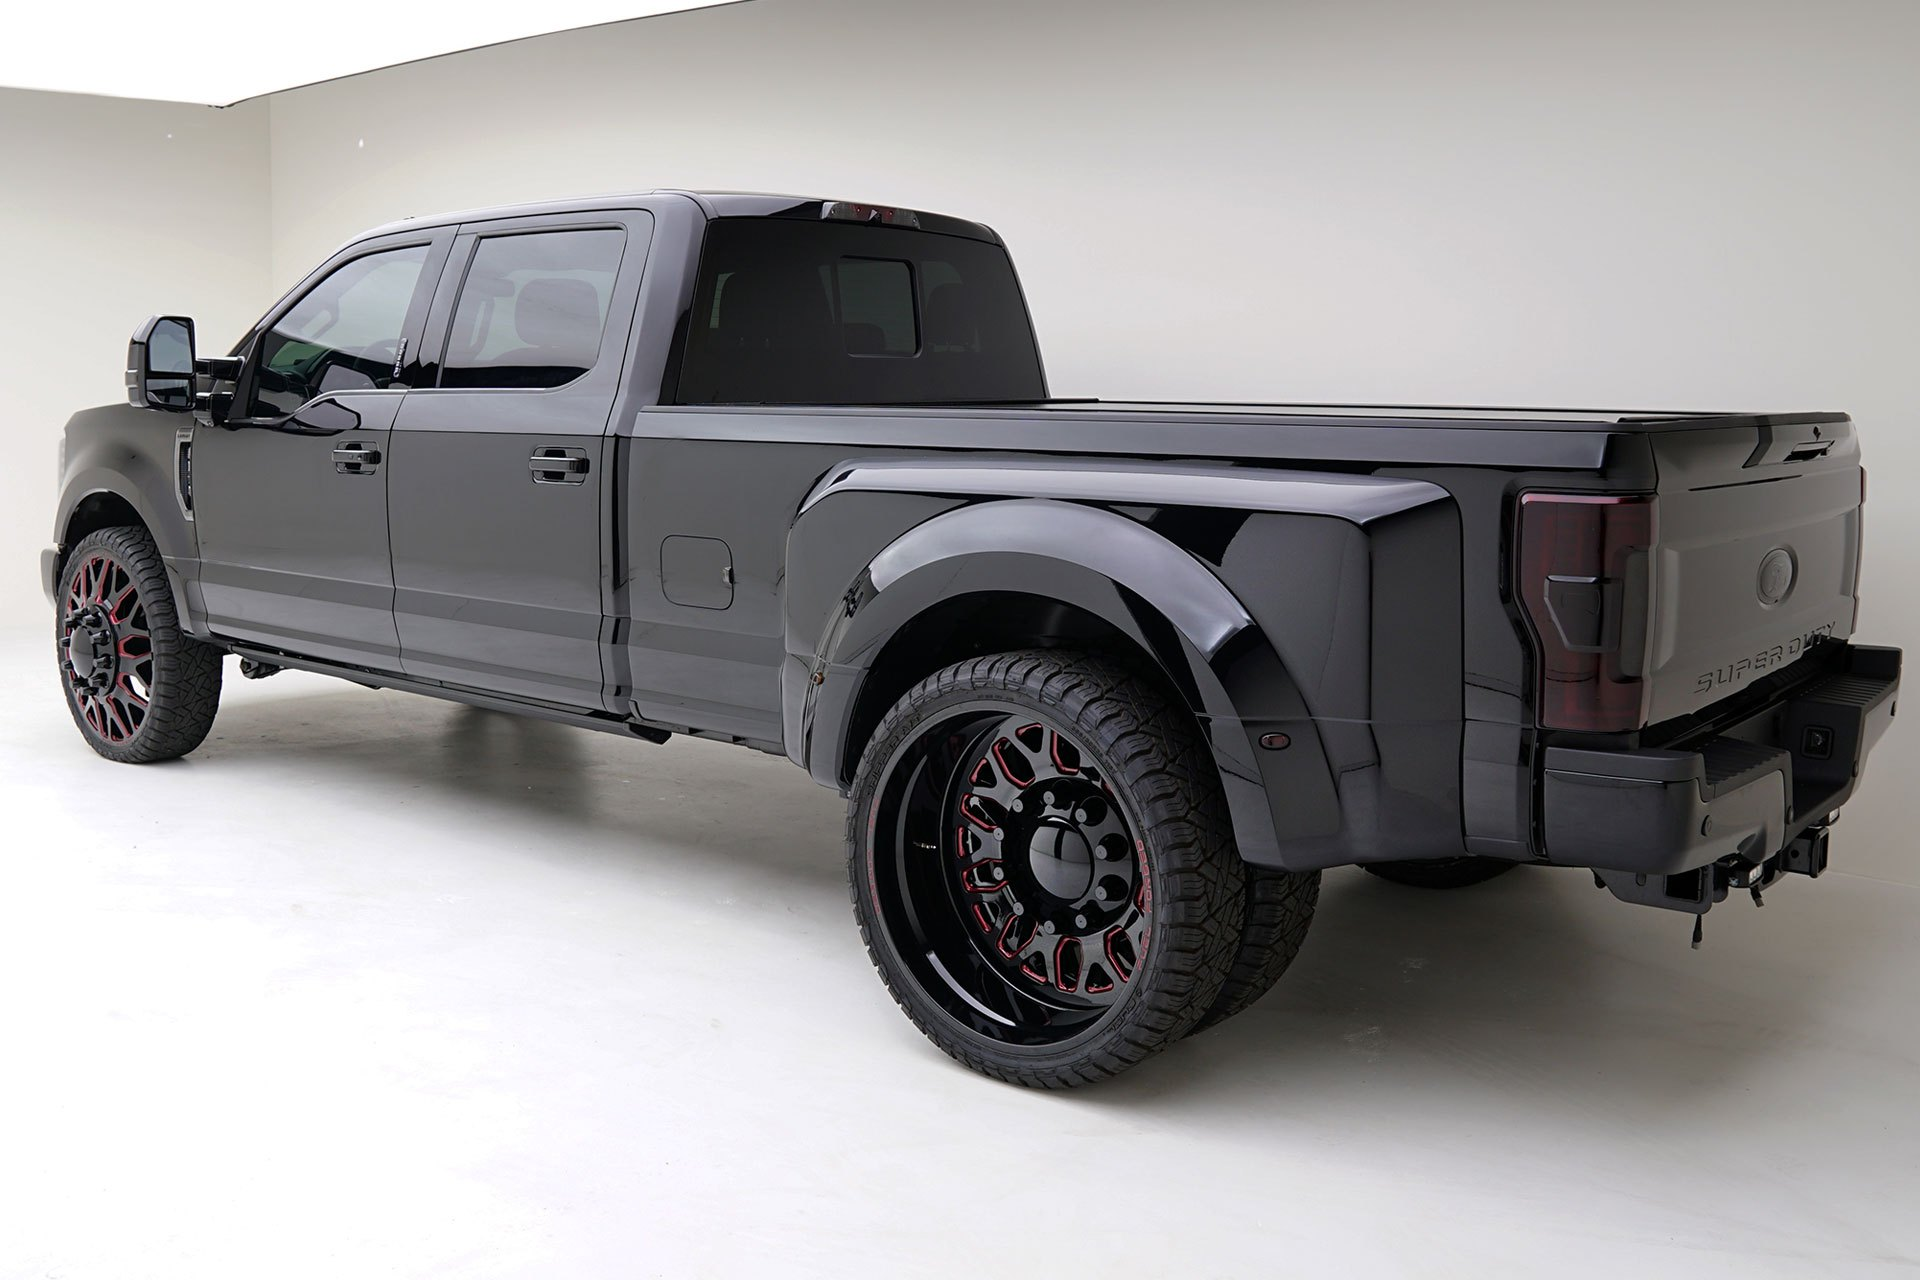 hight resolution of new body style ford f350 with custom wheels photo by mad industries